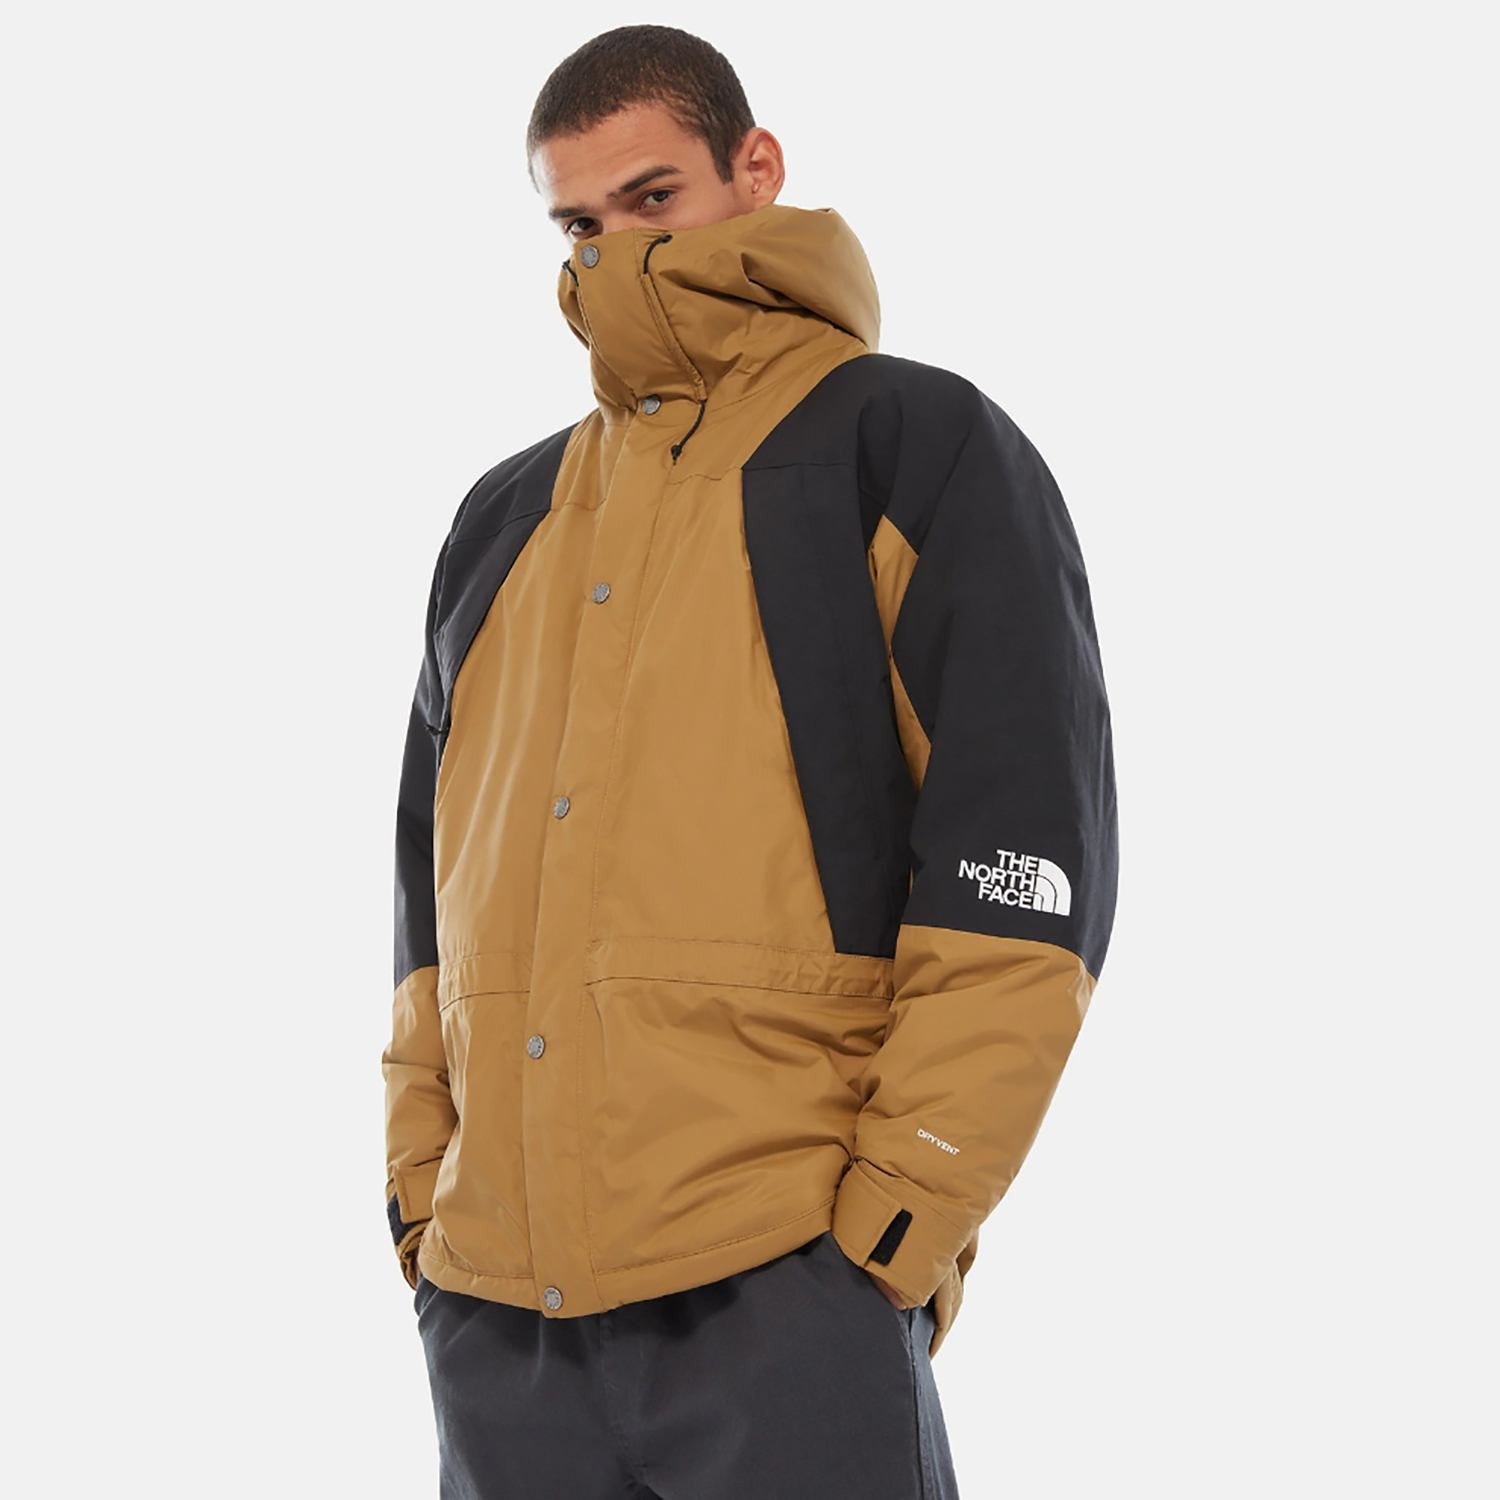 THE NORTH FACE Mountain Light Dryvent Insulated Jacket (9000036721_19279)